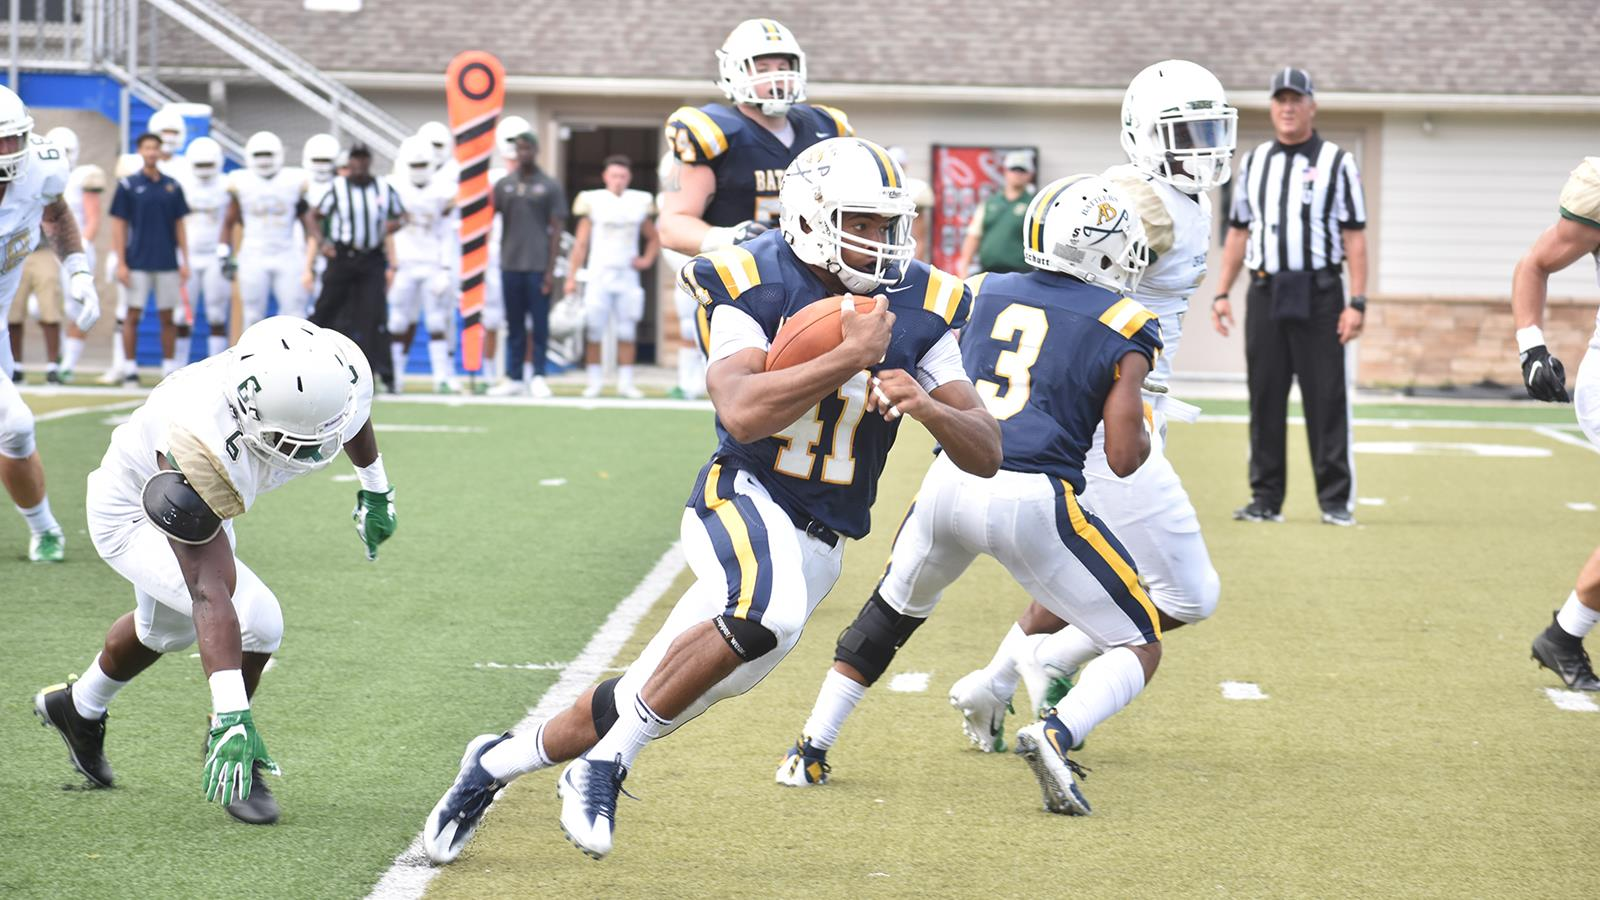 Ab Football Returns To G Mac Play With Trip To Ohio Dominican